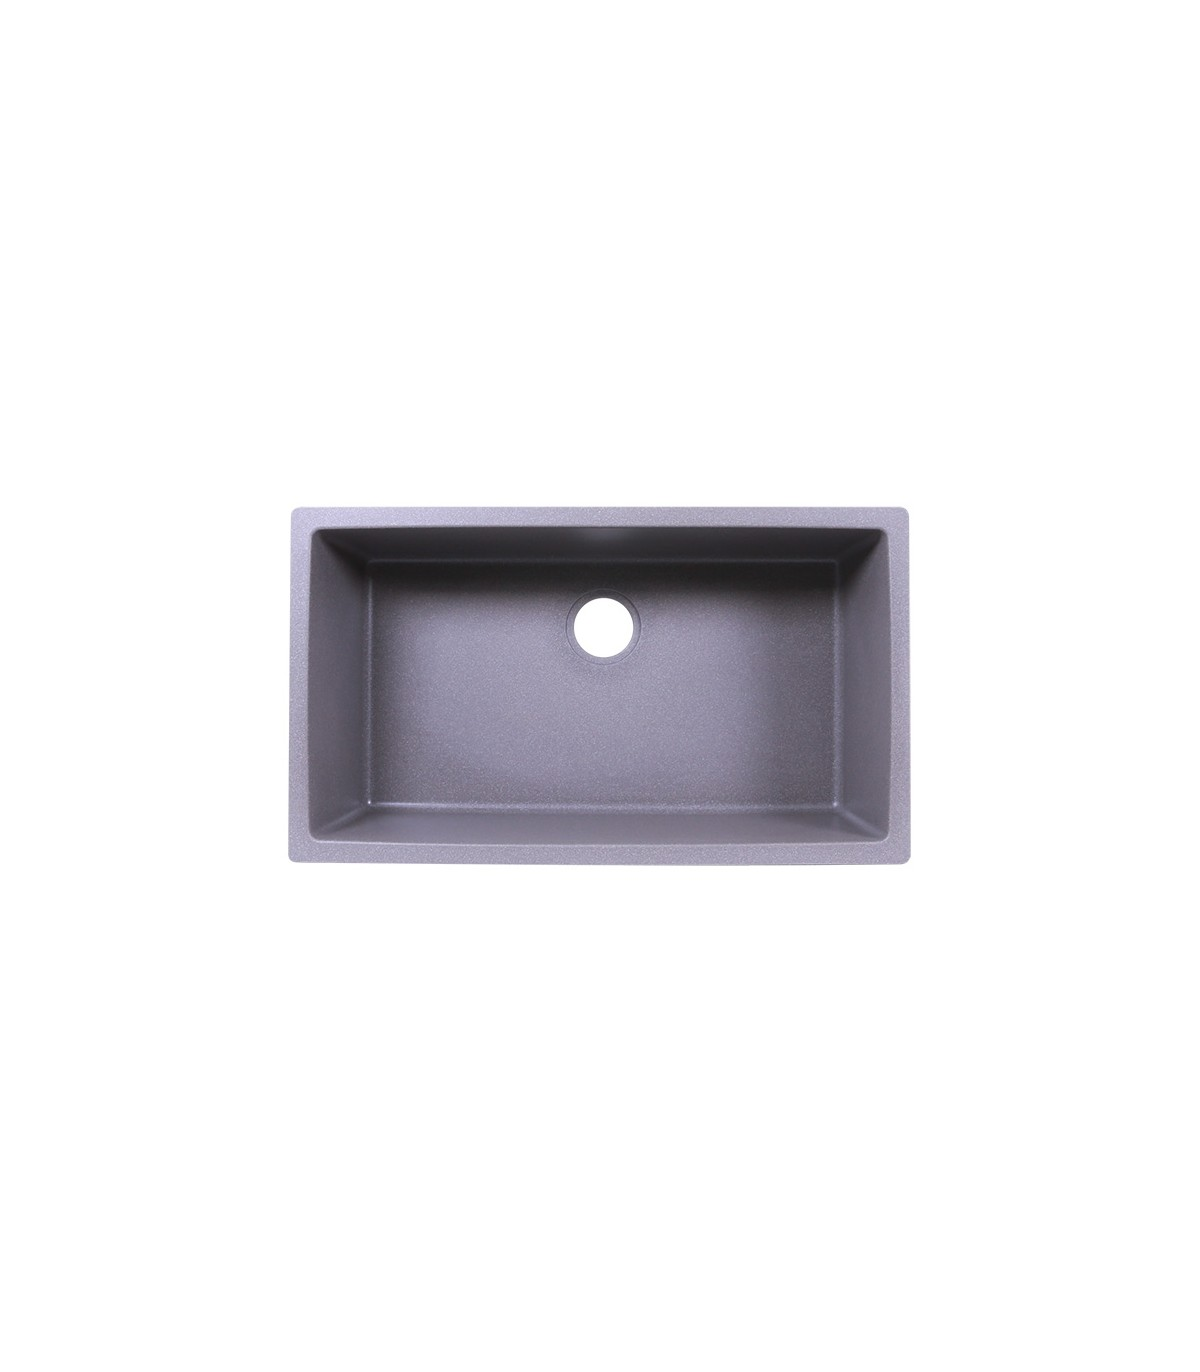 Granite Composite Undermount Kitchen Sinks Granite composite undermount sink single bowl workwithnaturefo